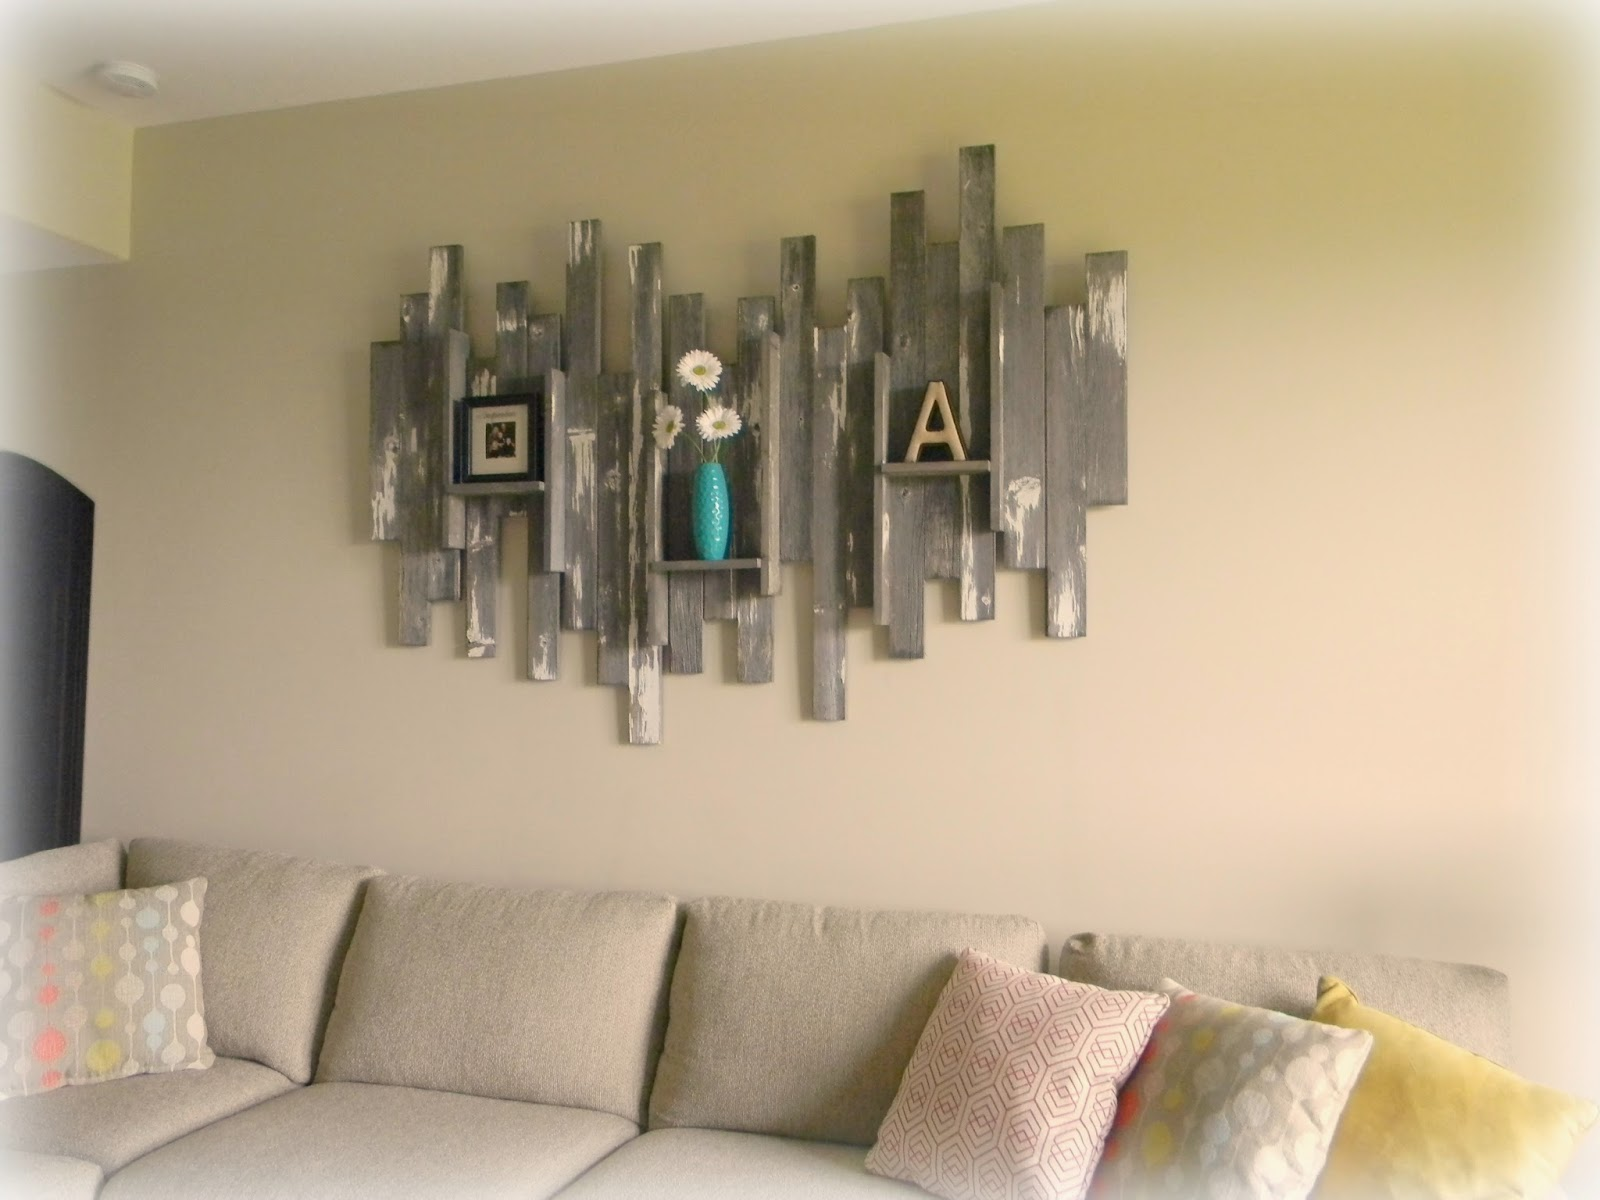 Barn Wood Art Ideas Forever Decorating Barn Wood Wall Art And Basement